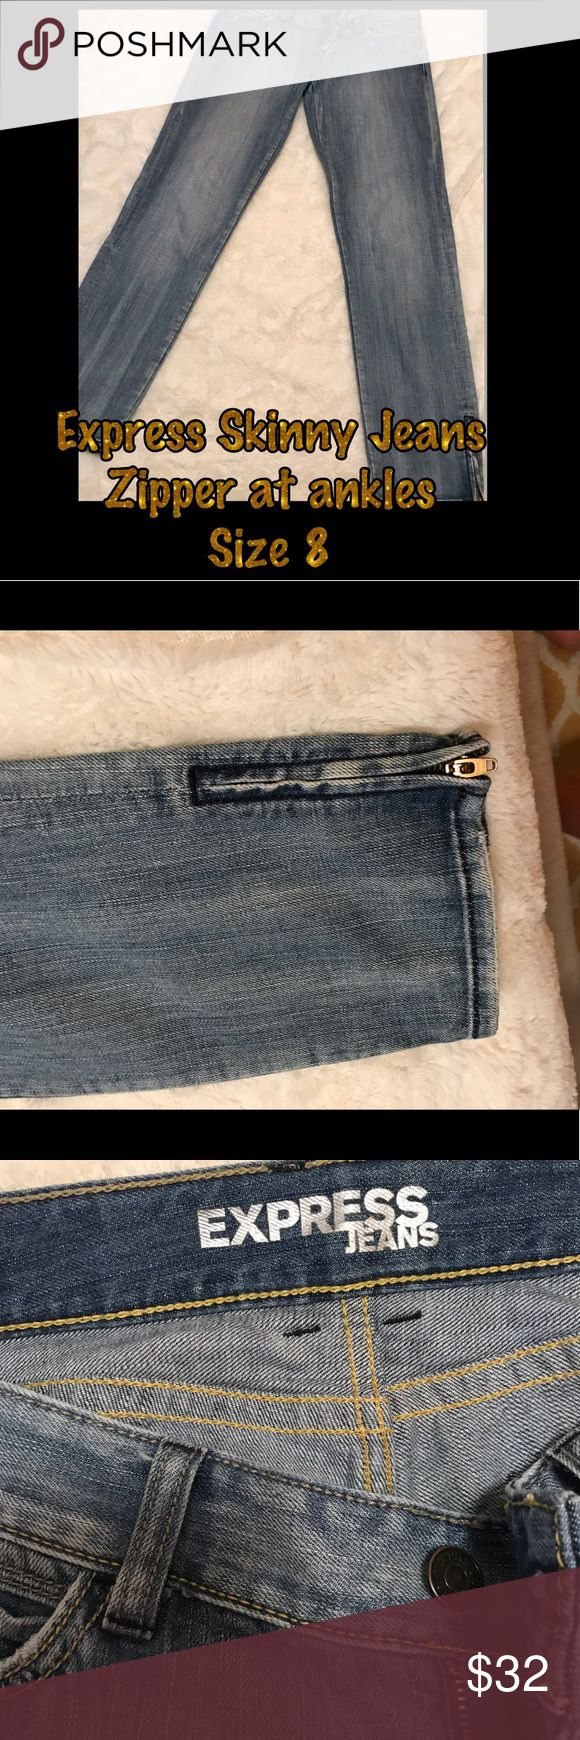 Express Skinny Jeans w/ zipper detail at ankles ECU never worn! 100% cotton jeans size 8 skinny jeans with zippers at ankles. Great jeans to pair with heels for a night out or sneakers for daytime. Express Jeans Skinny